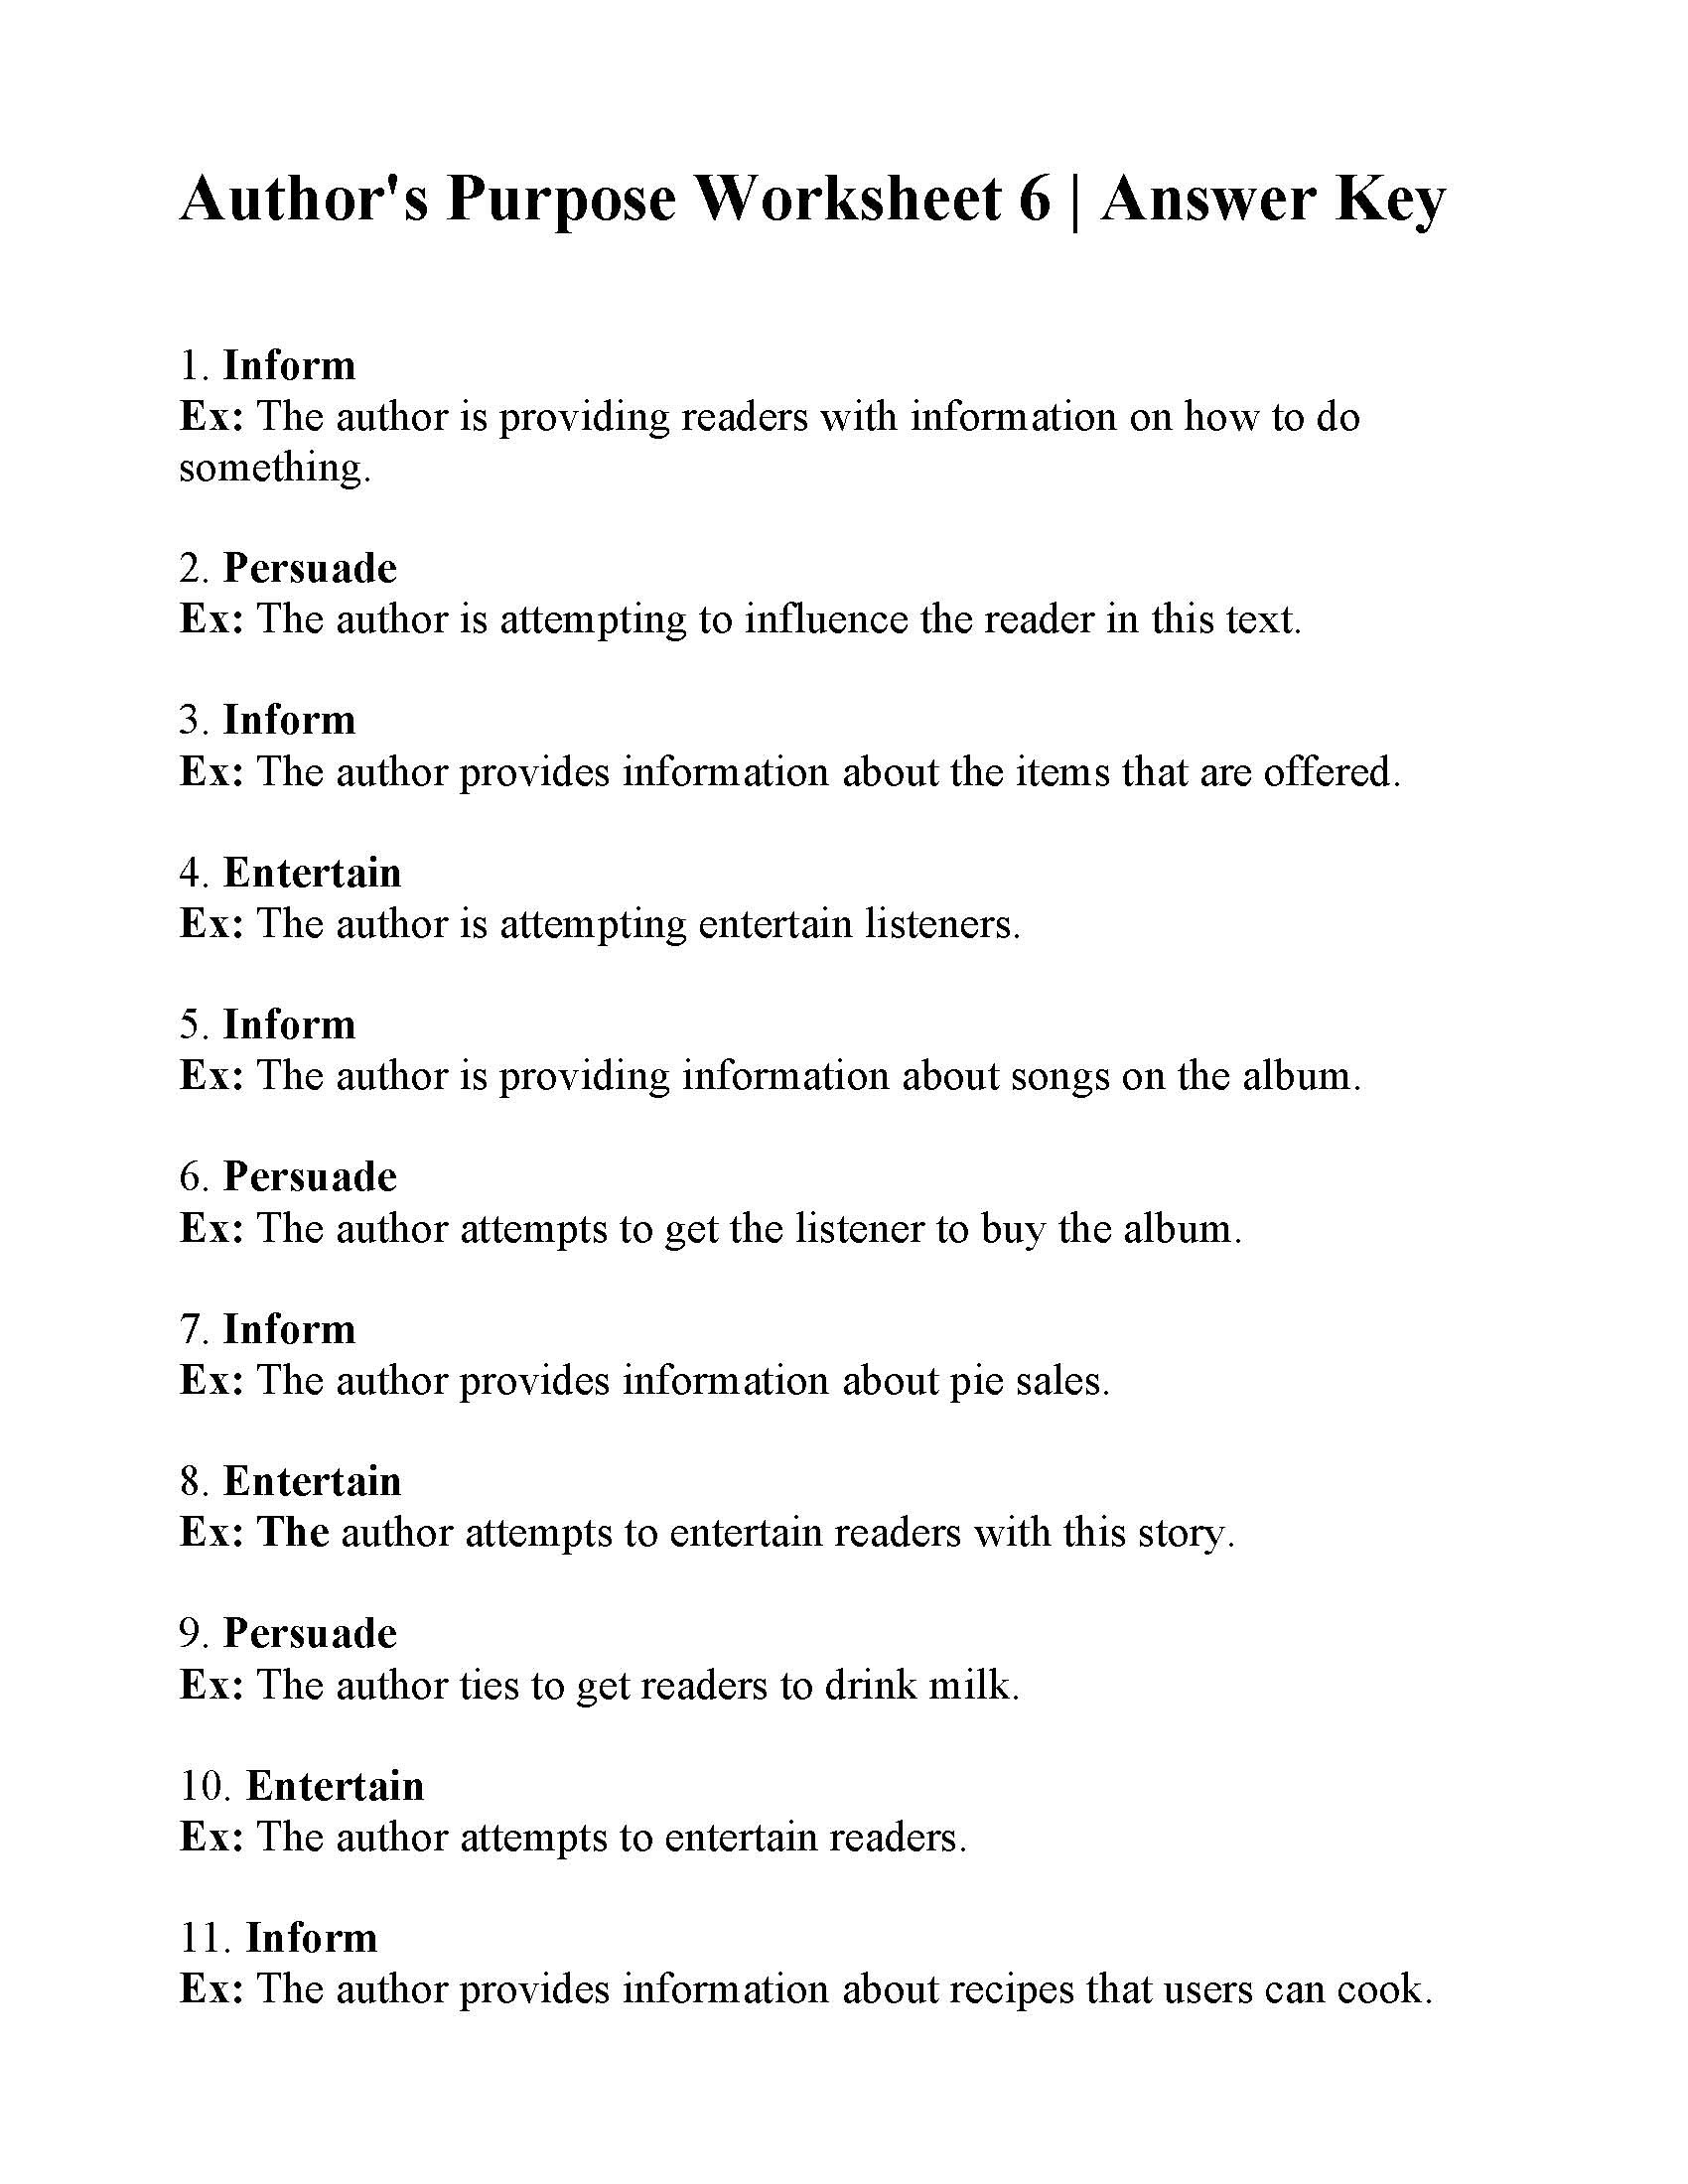 Printables Of Author S Purpose Worksheet Answer Key